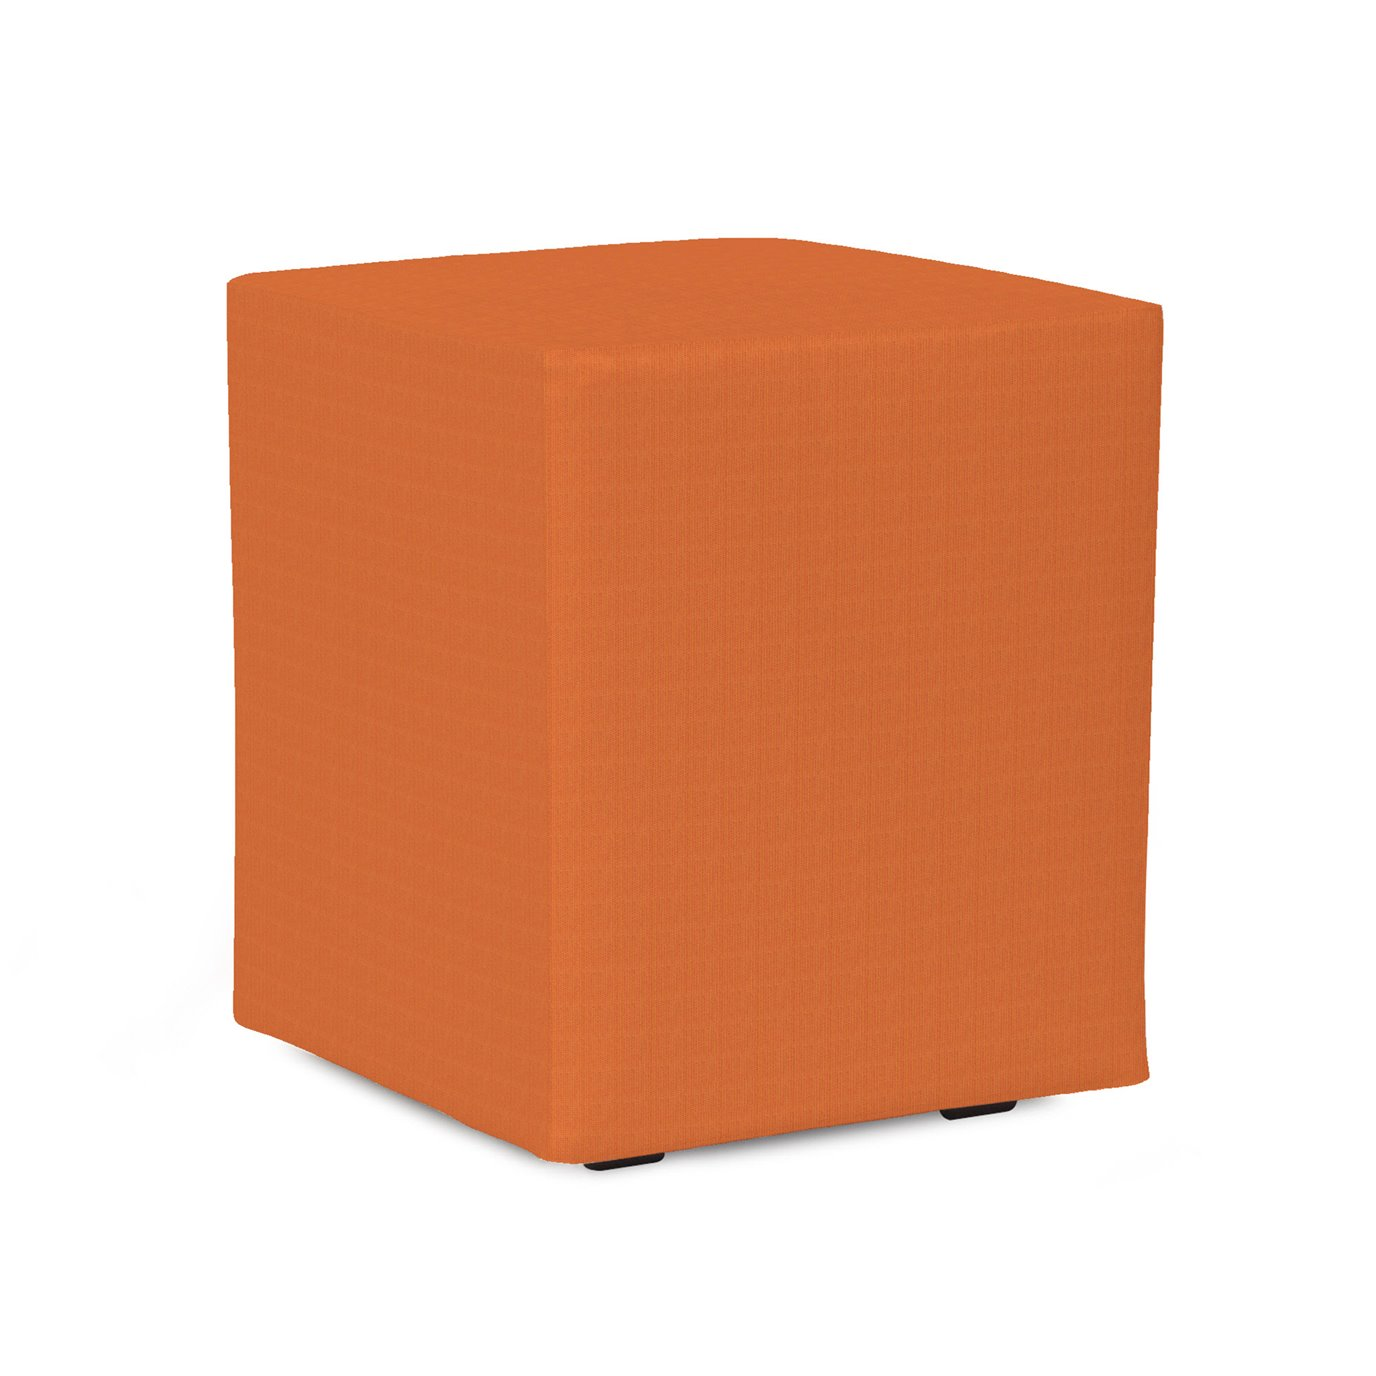 Howard Elliott Universal Cube Cover Sunbrella Outdoor Seascape Canyon - Cover Only, Base Not Included